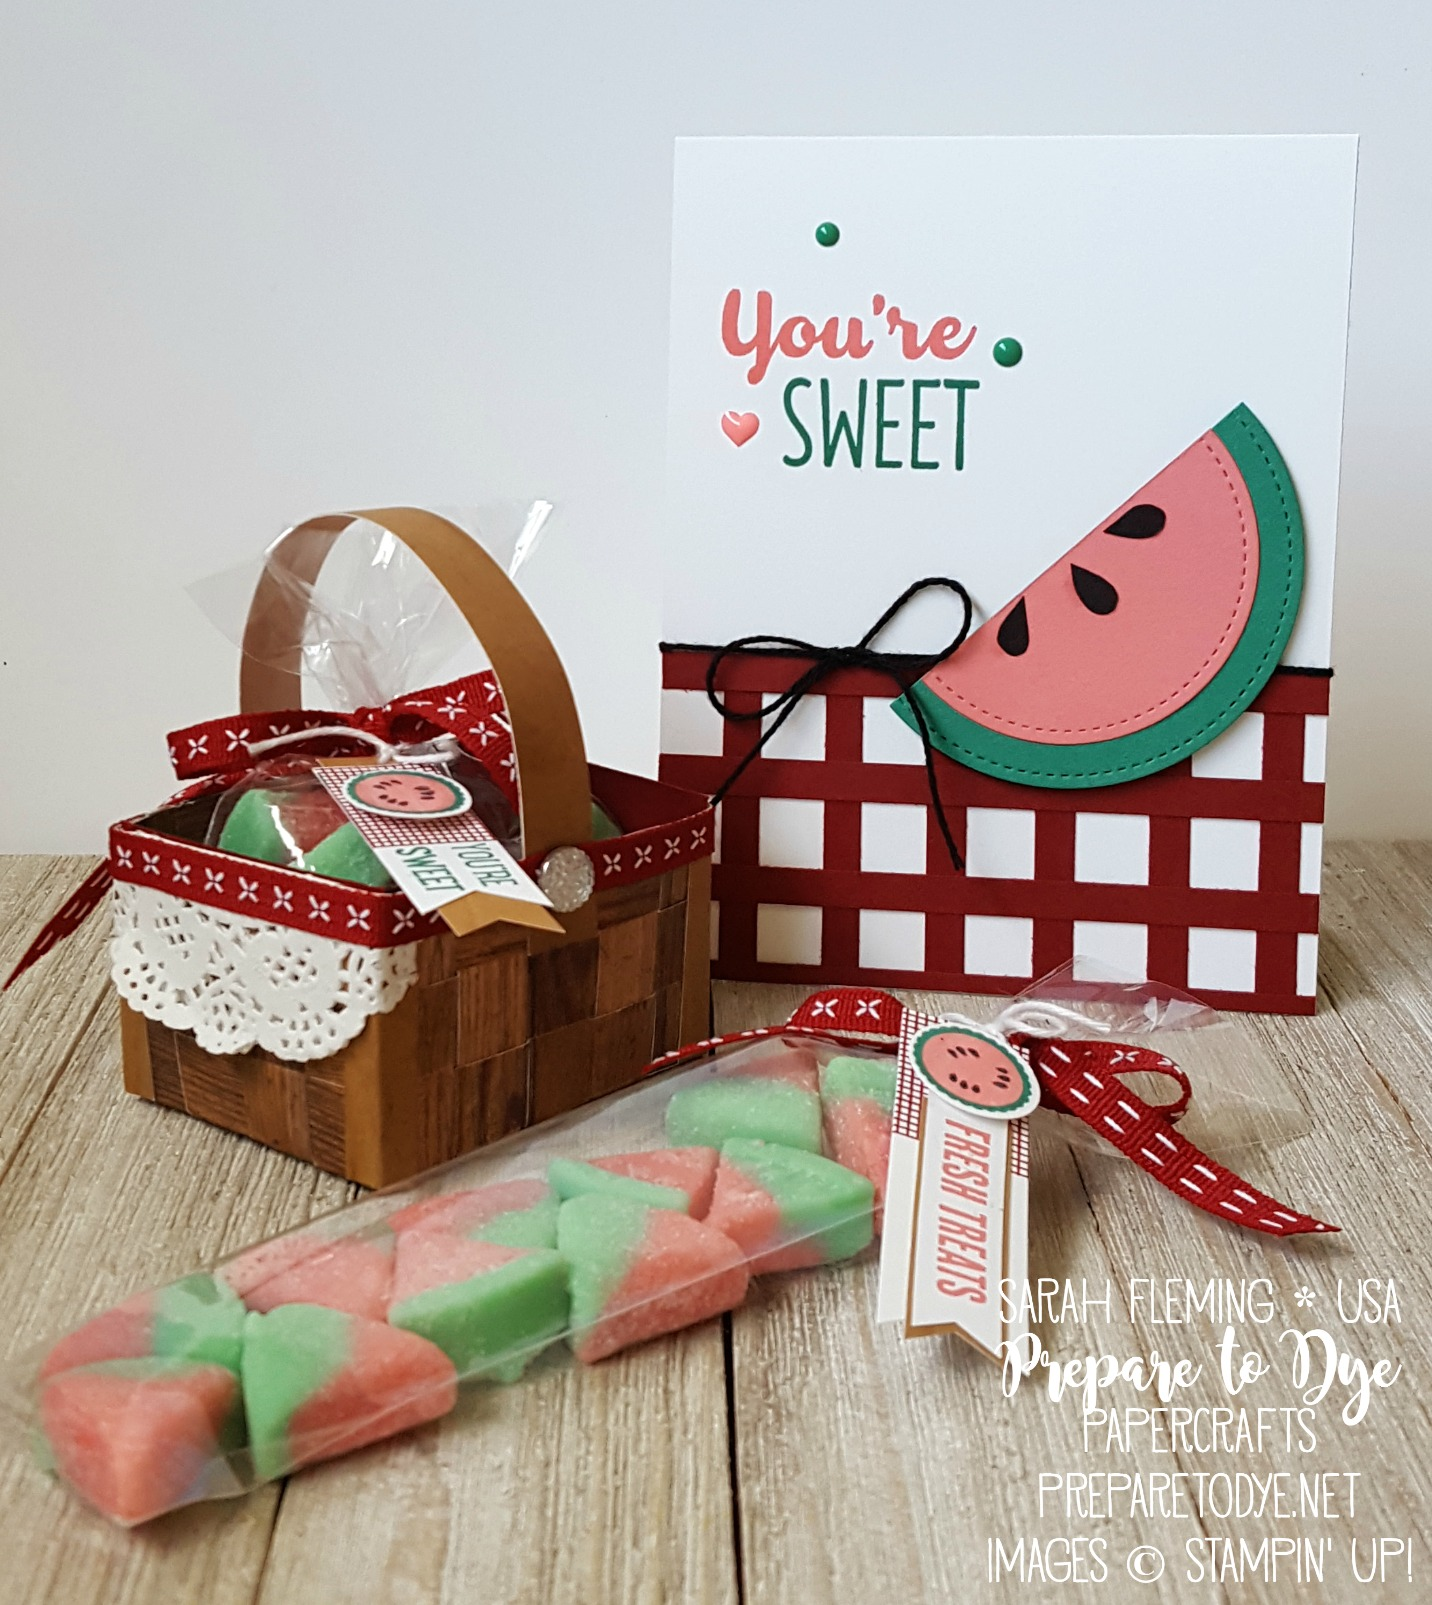 Stampin' Up! picnic-themed goodies and handmade card - paper picnic basket with Wood Textures dsp stack, treat container, basket weave, watermelon, Cool Treats, Tabs for Everything - Sarah Fleming - Prepare to Dye Papercrafts